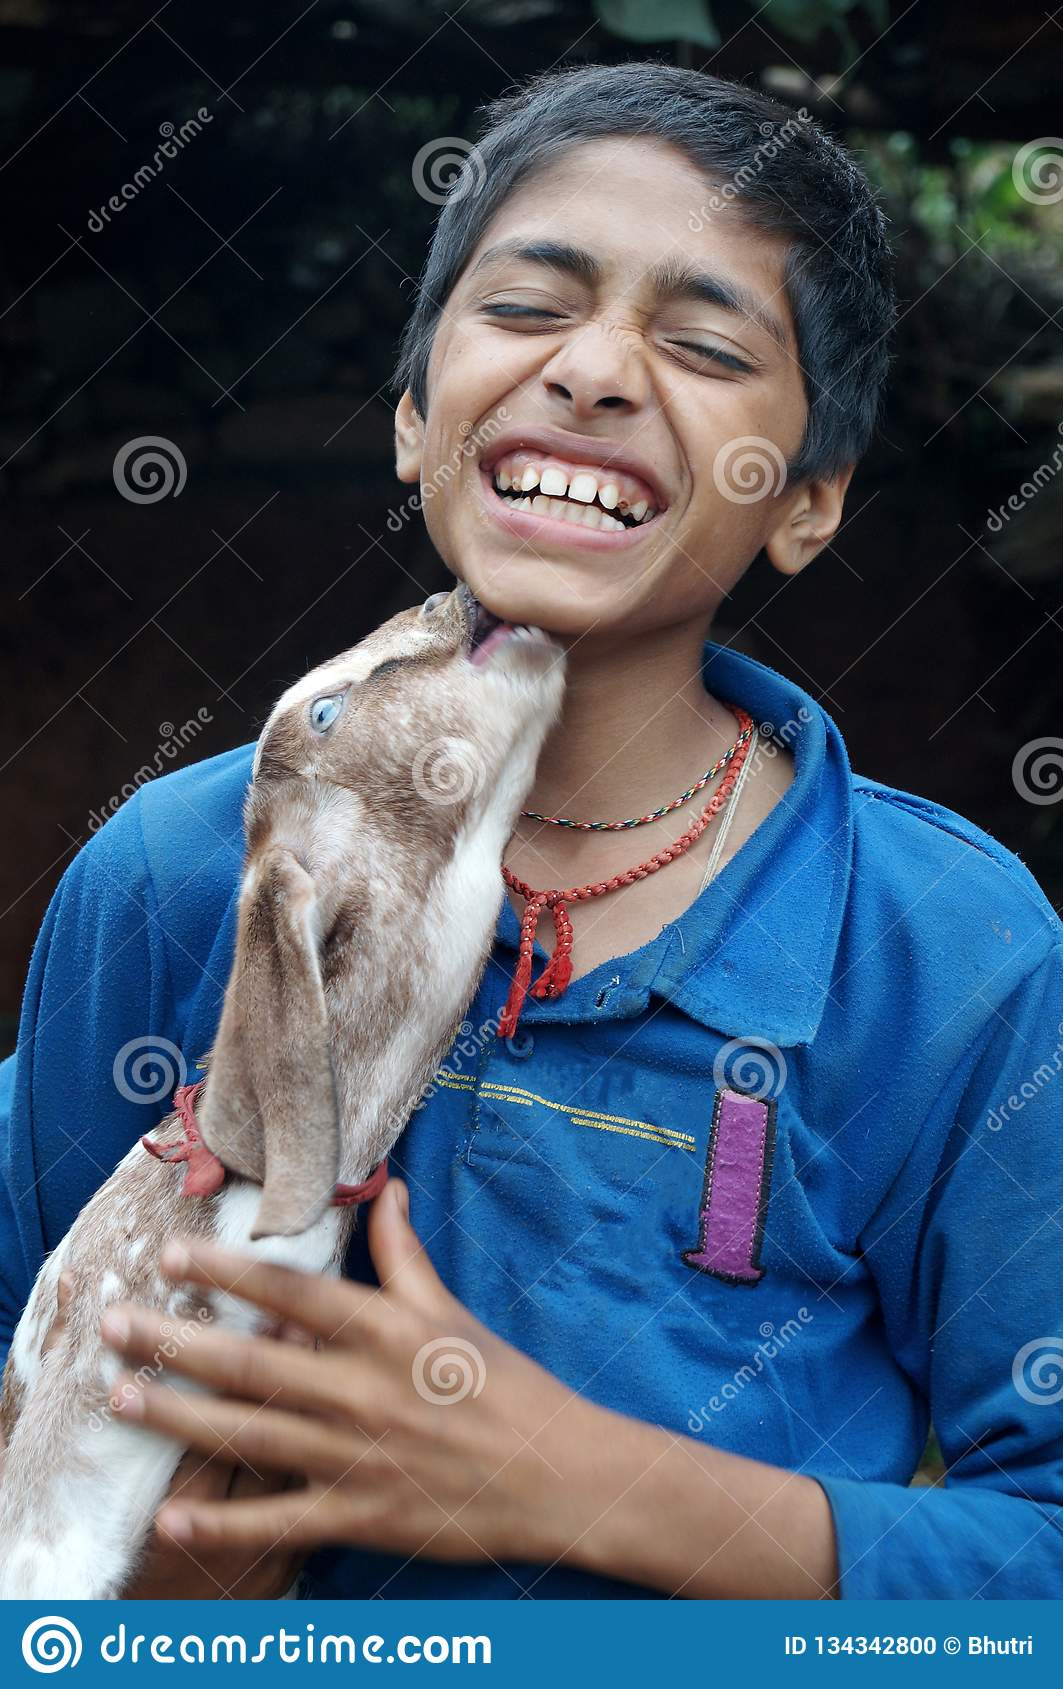 Baby Goat kissing a boy